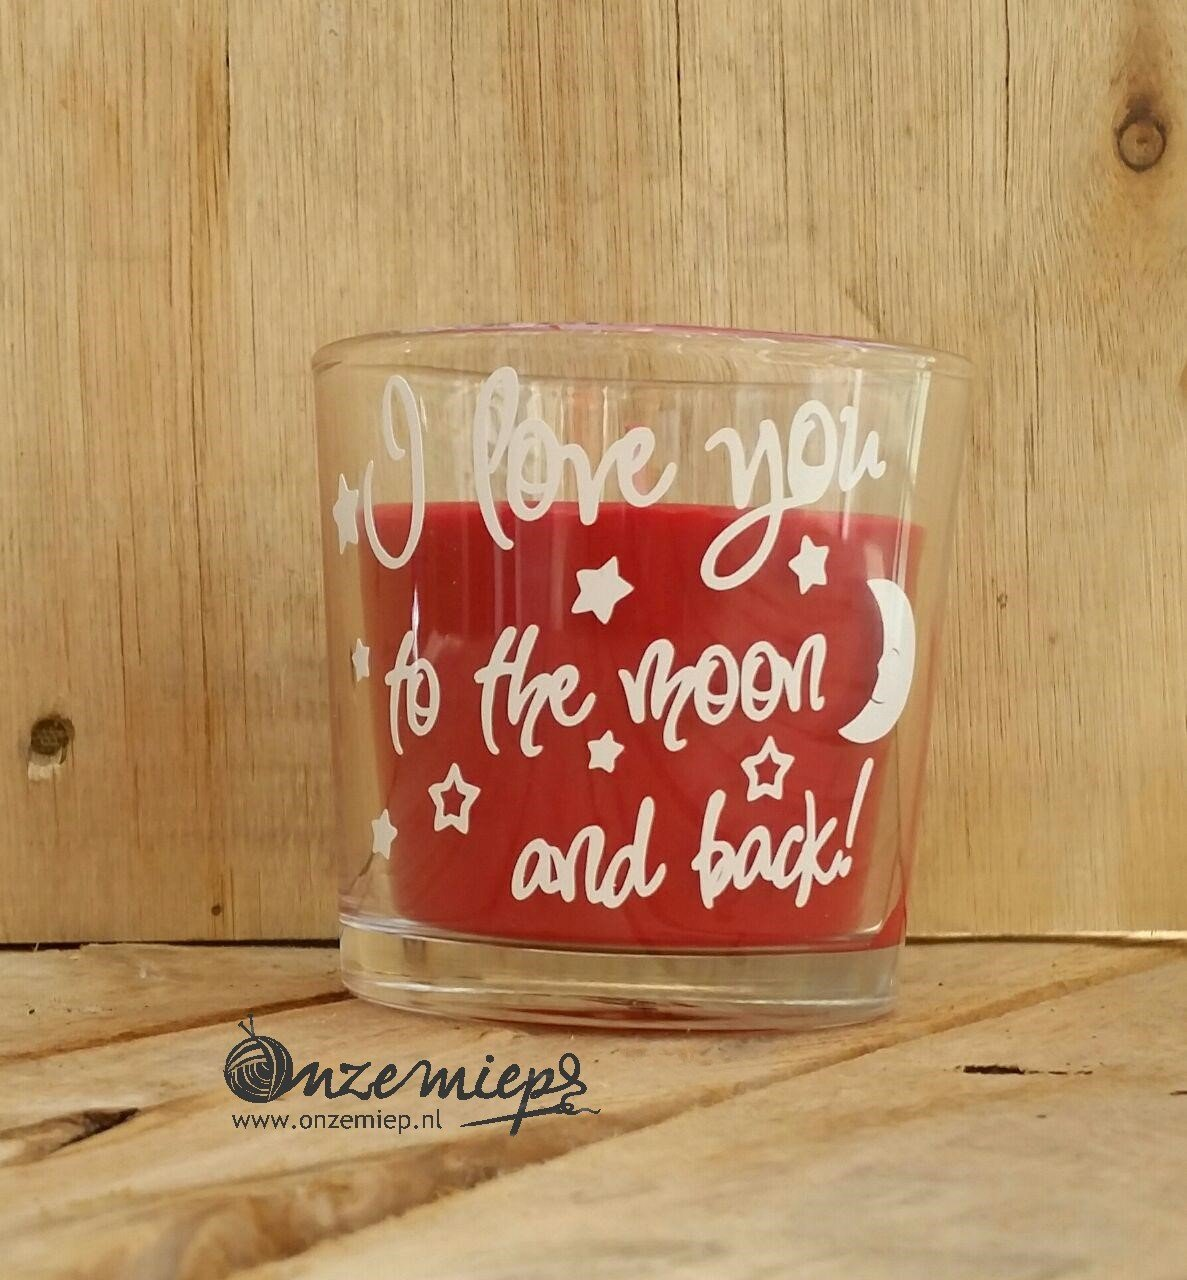 "Rode geurkaars met de tekst ""I love you to the moon and back"""